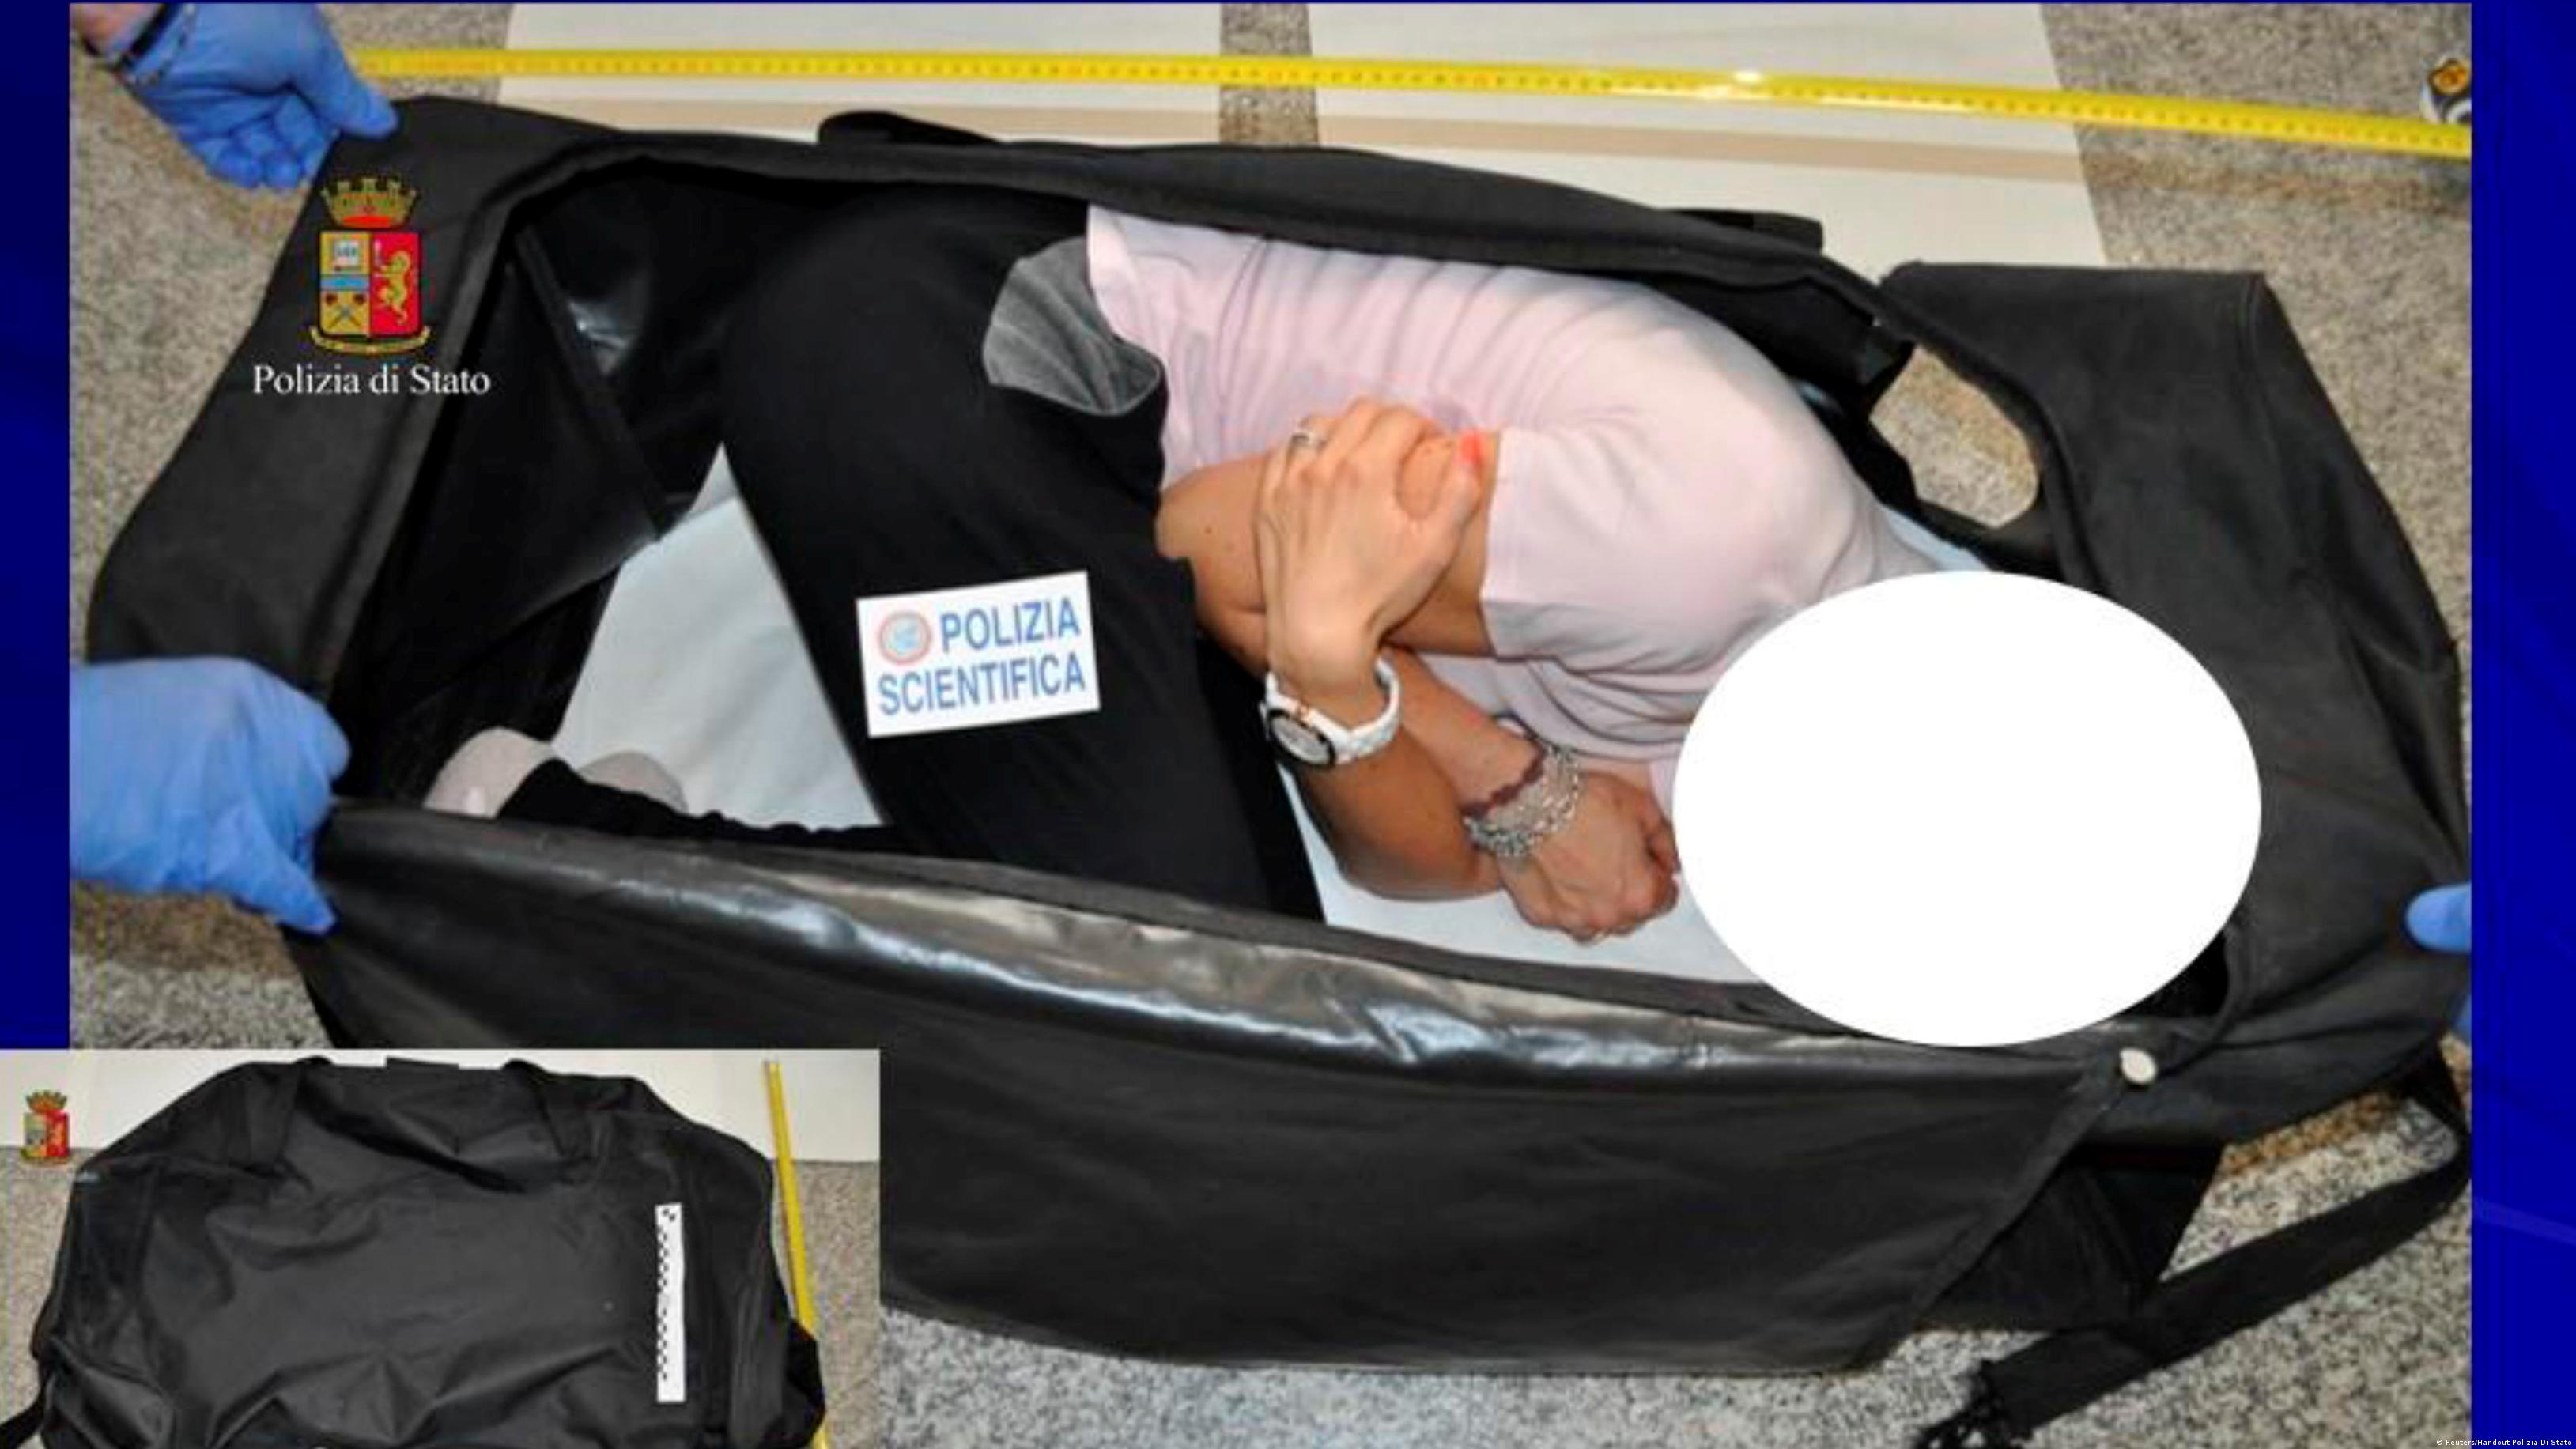 A woman taking part in a re-enactment by Italian police shows how a kidnapped British model was held in a suitcase